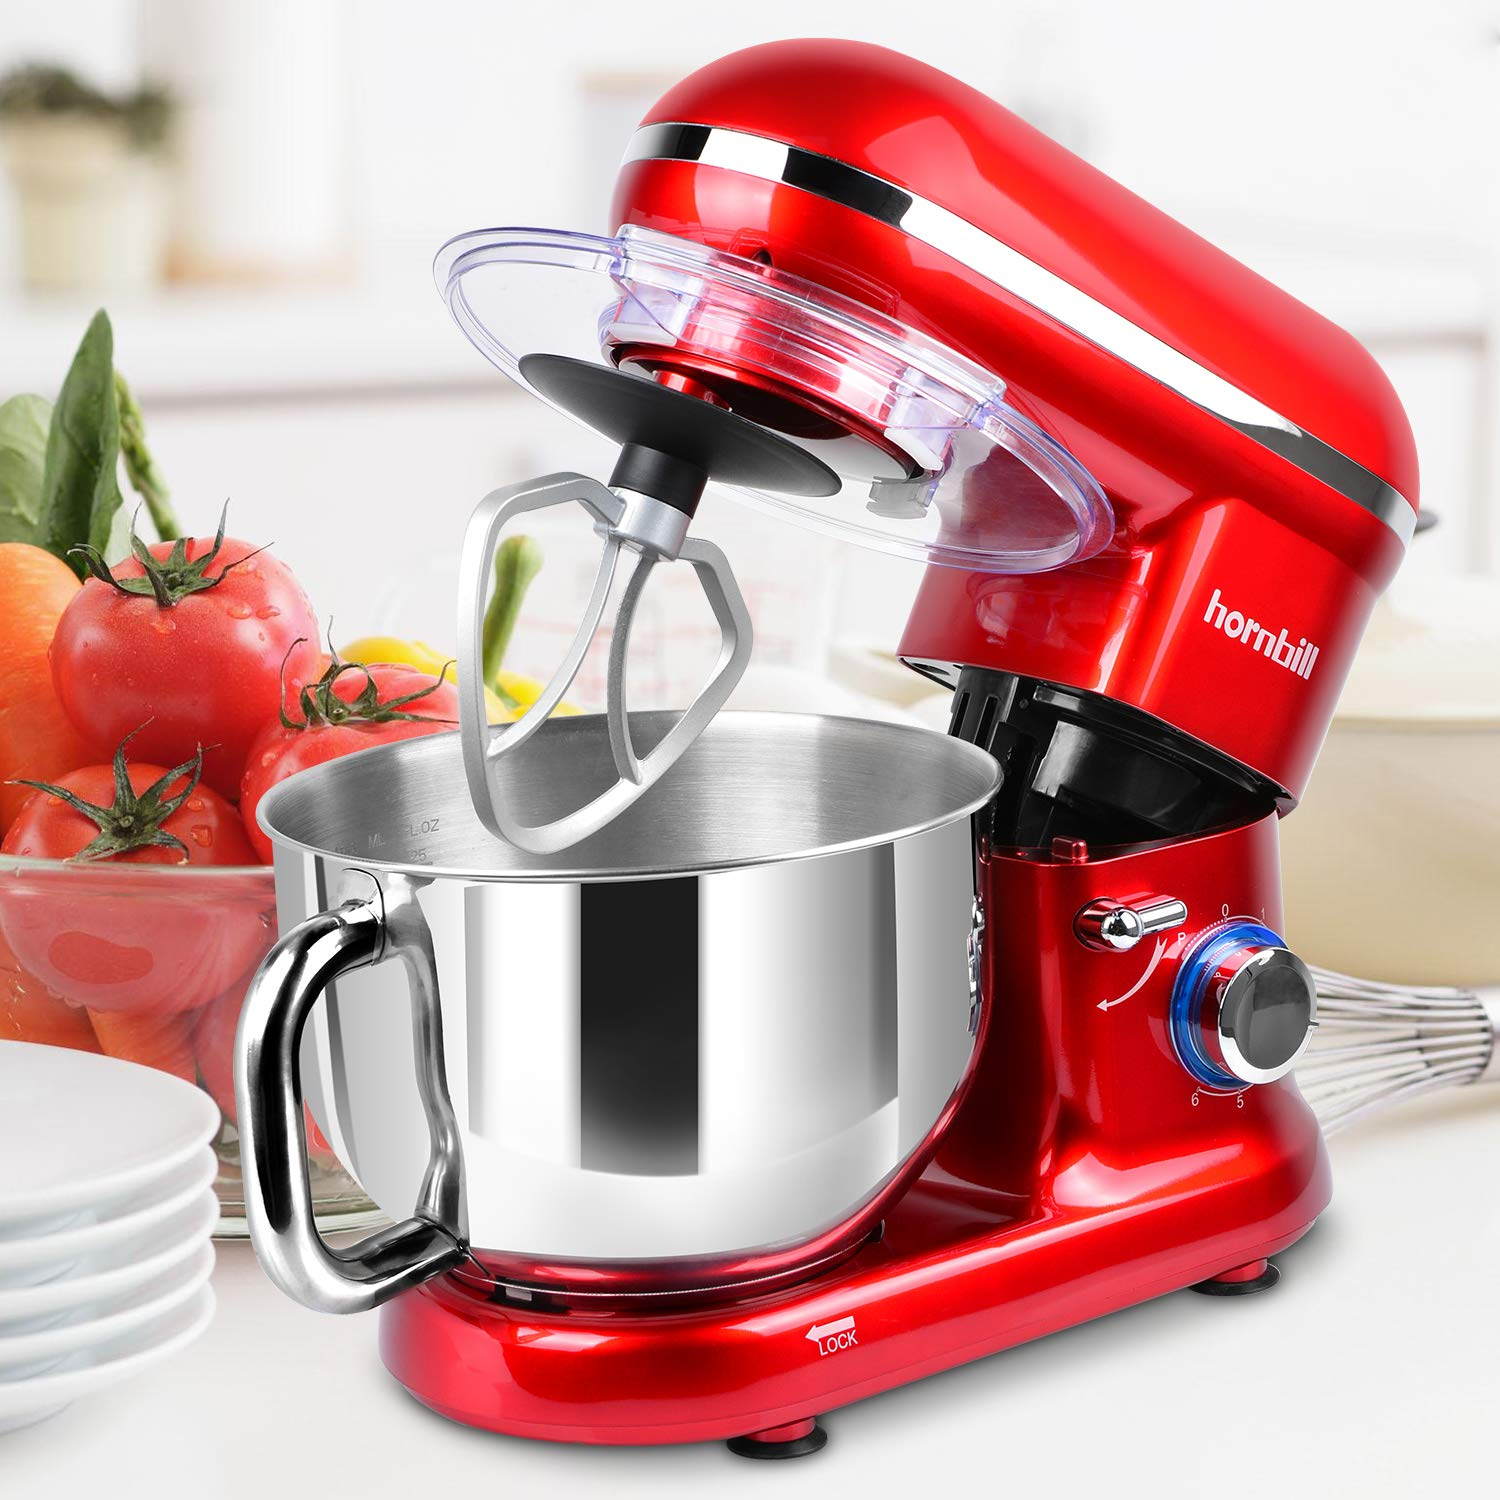 Hornbill Tilt-head Stand Mixer, Electric Mixer 600W 6-Speed 5-Quart Stainless Steel Bowl Professional Kitchen Mixer With Dough Hook, Whisk, Beater(Red) by Hornbill (Image #5)